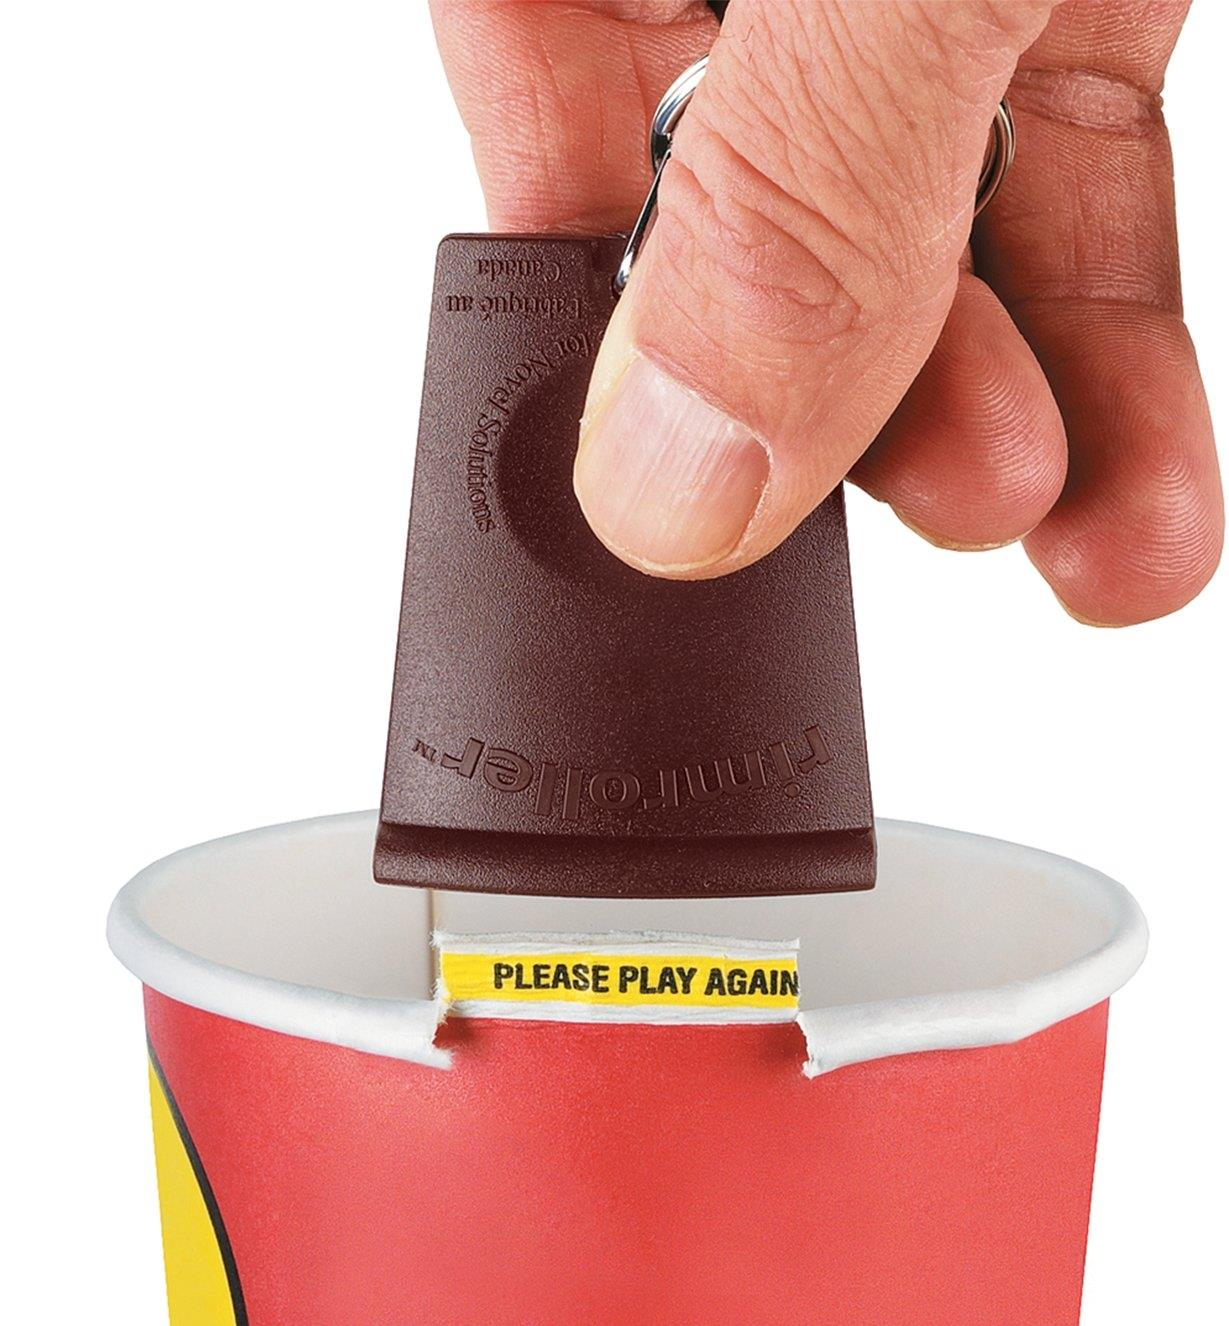 Pulling up the Rimroller to unroll the rim of the cup and reveal the message inside